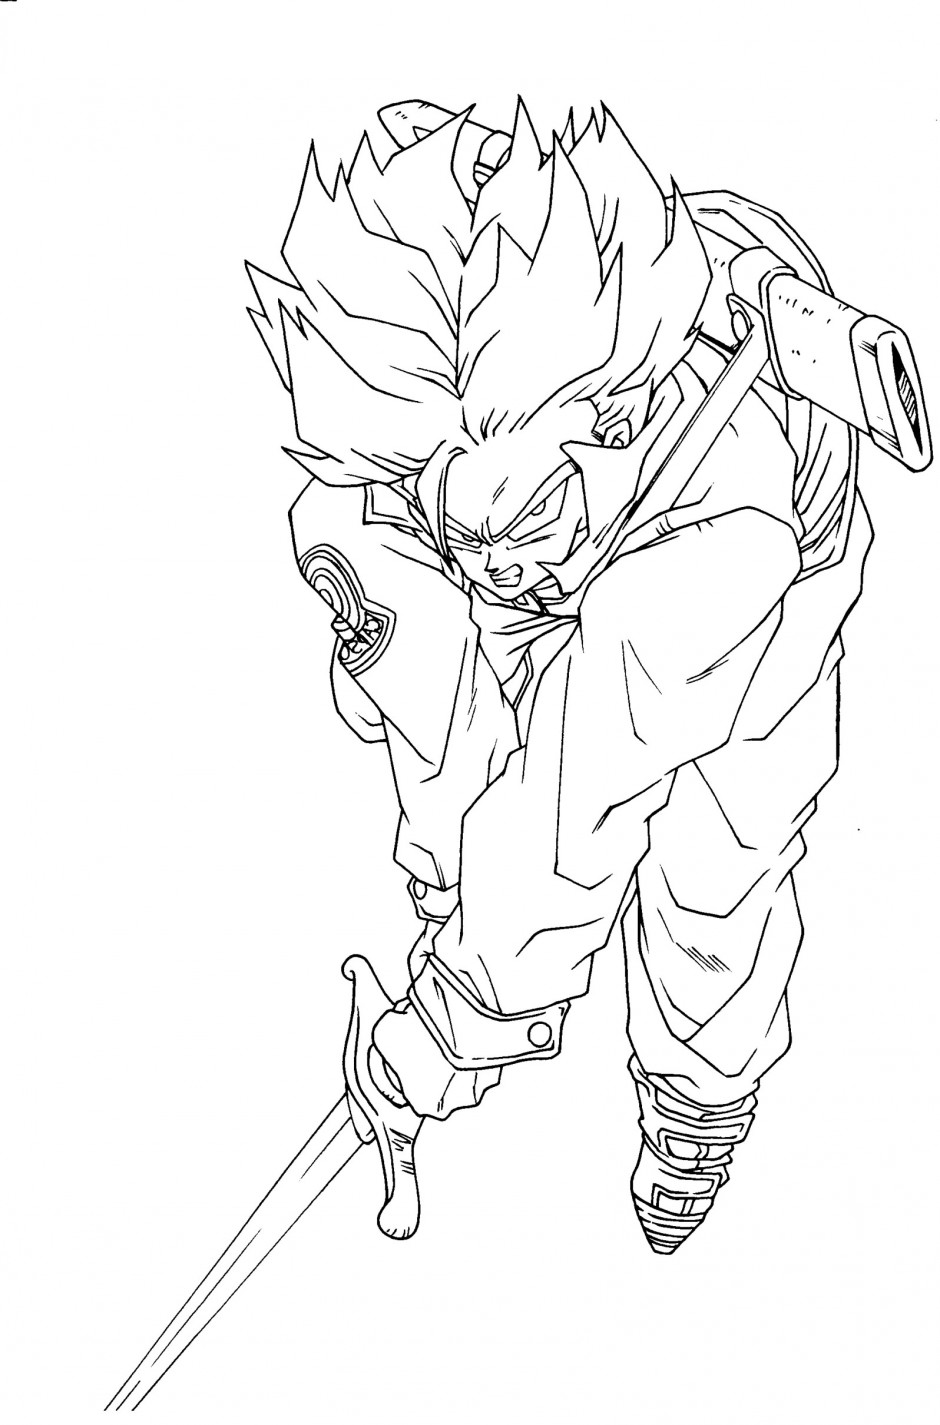 940x1425 Dragon Ball Z Saiyan Trunks Coloring Pages Trunks Dragon Ball